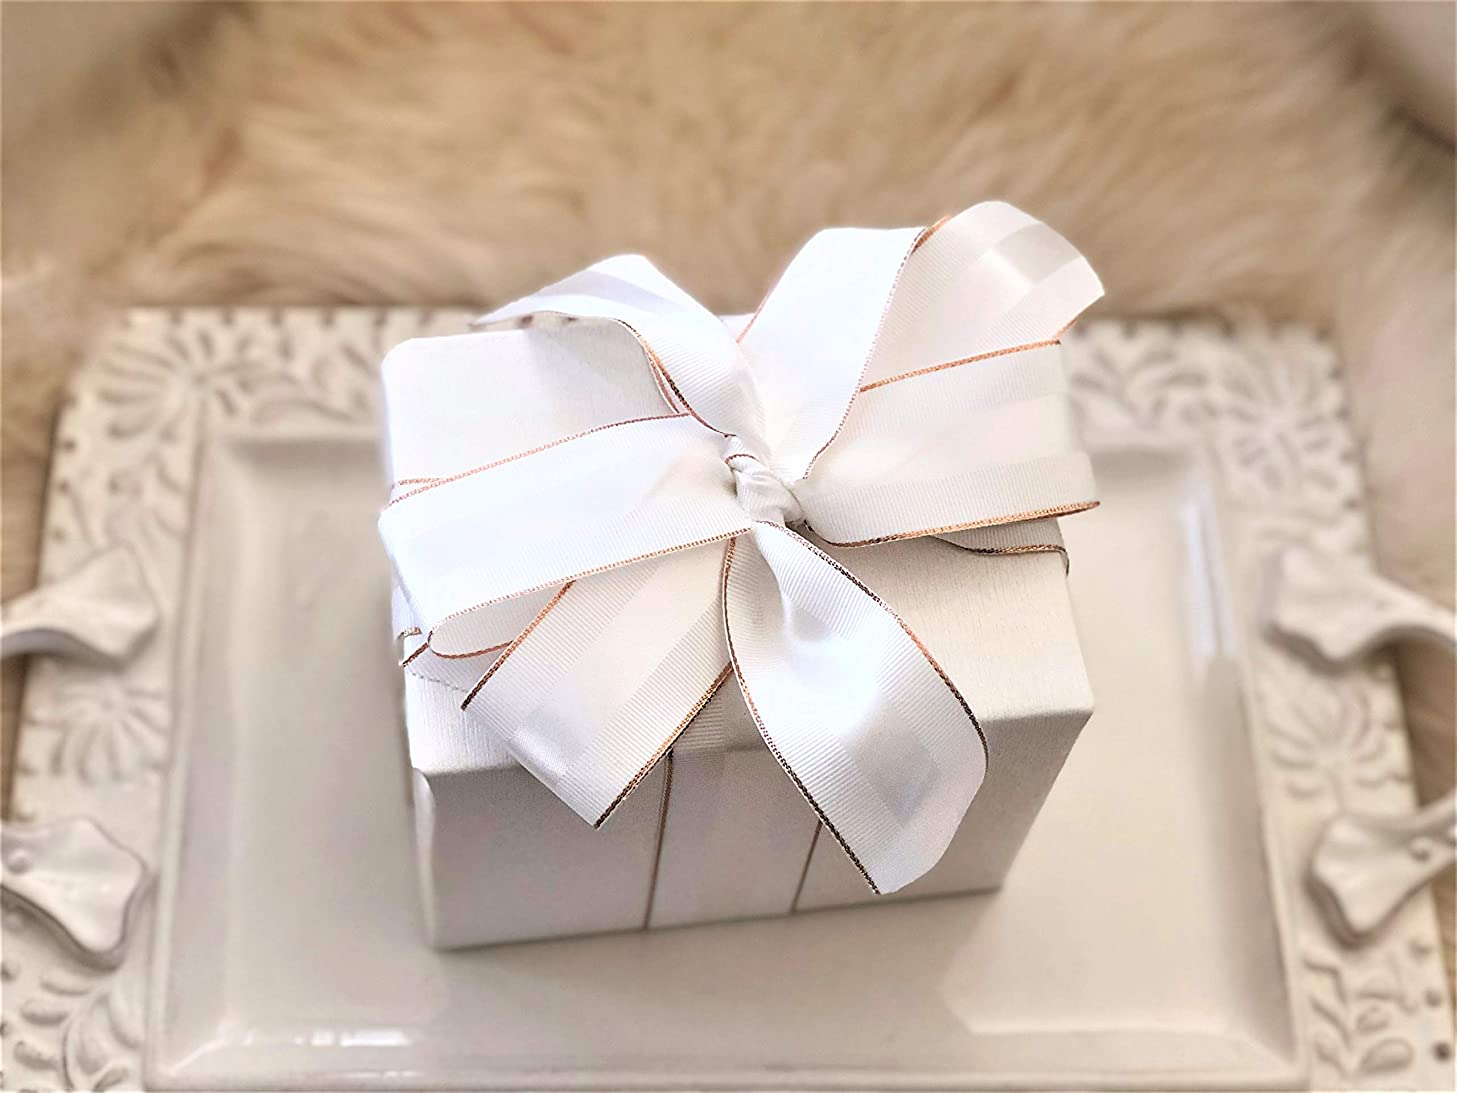 Winter White & Rose Gold Grosgrain Ribbon 1 1/2 inch, 10 Yards Per Roll | Double Face, 1.5 Inch, Premium Fabric Ribbon with Metal Trim | for Wedding Gifts, Baby Showers, Bridal Showers, Crafts